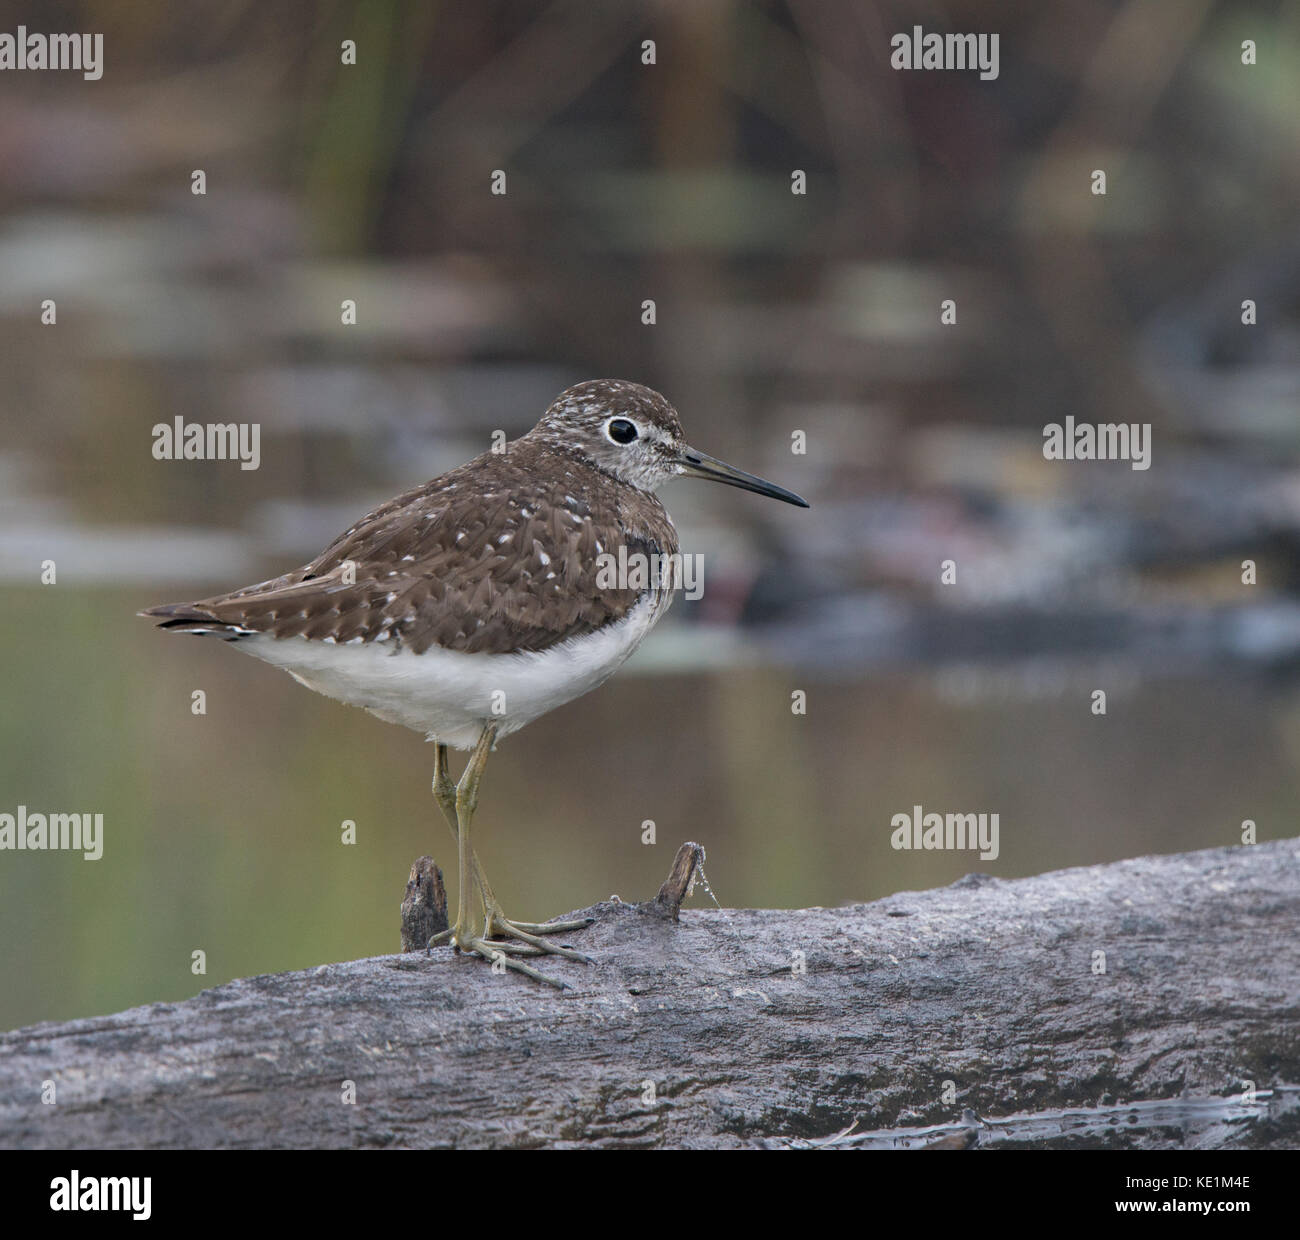 Spotted Sandpiper, Actitis macularia walking on log Ontario, Canada Stock Photo